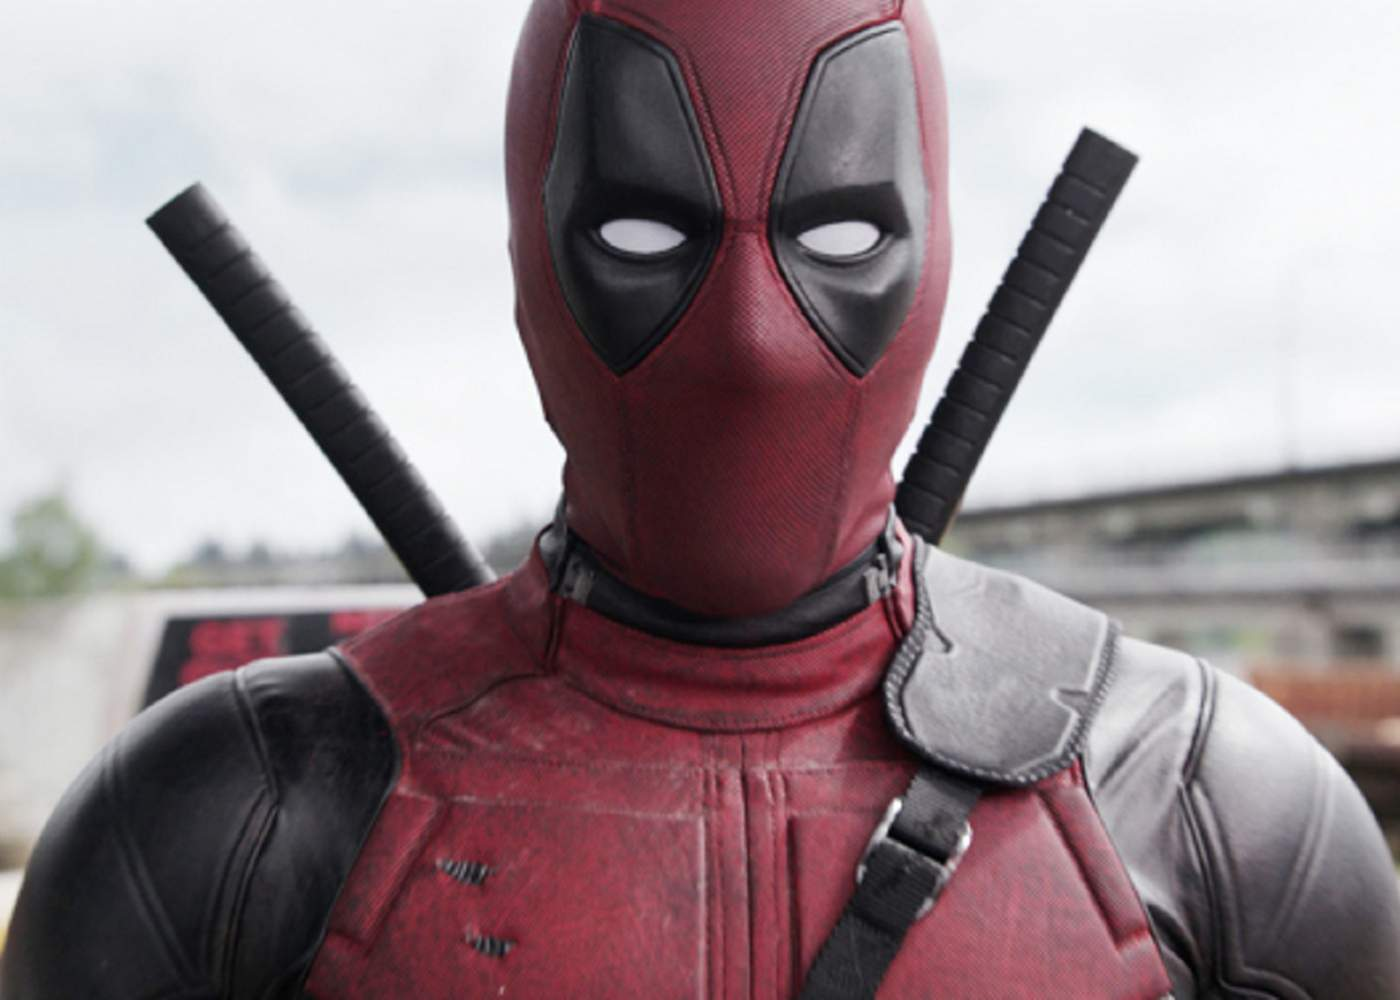 Stunt Person Dies on Set of Deadpool 2